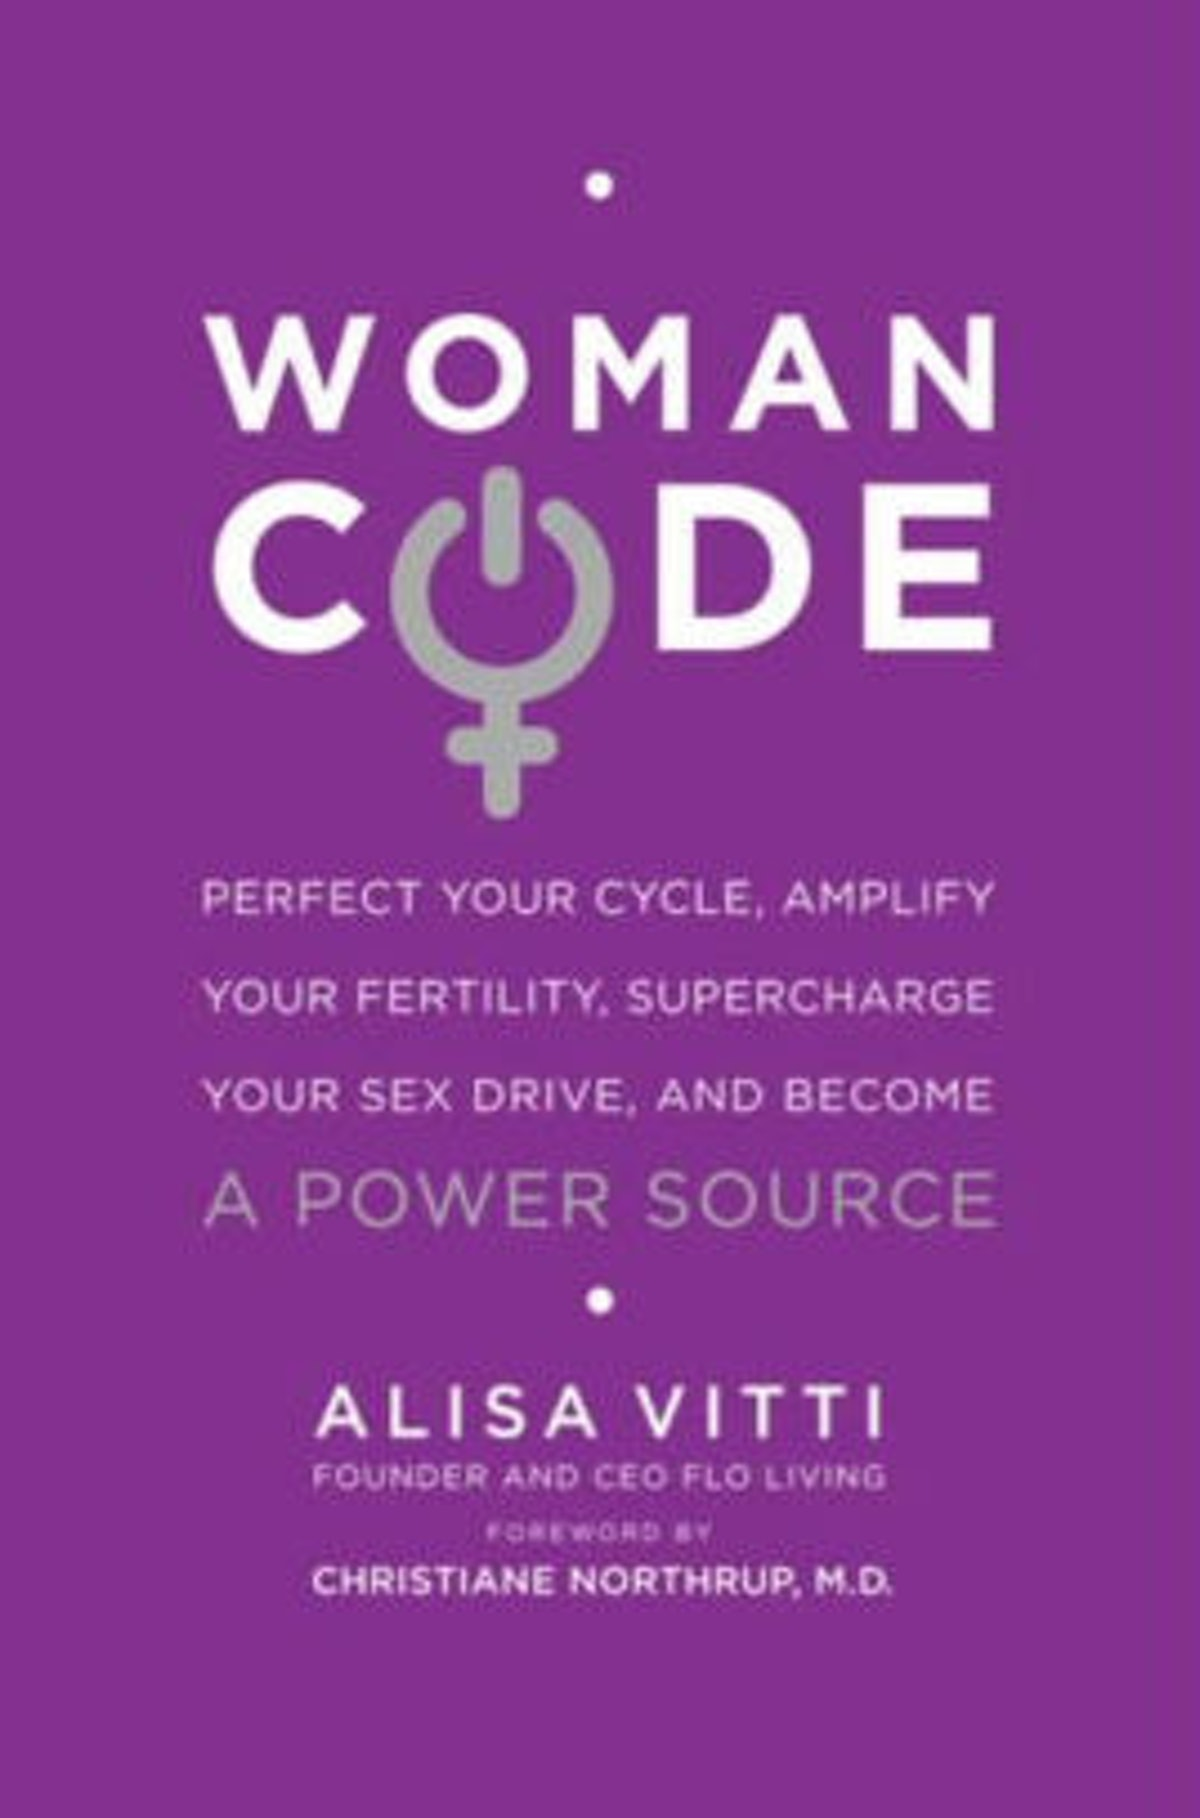 WomanCode: Perfect Your Cycle, Amplify Your Fertility, Supercharge Your Sex Drive, and Become a Powe...